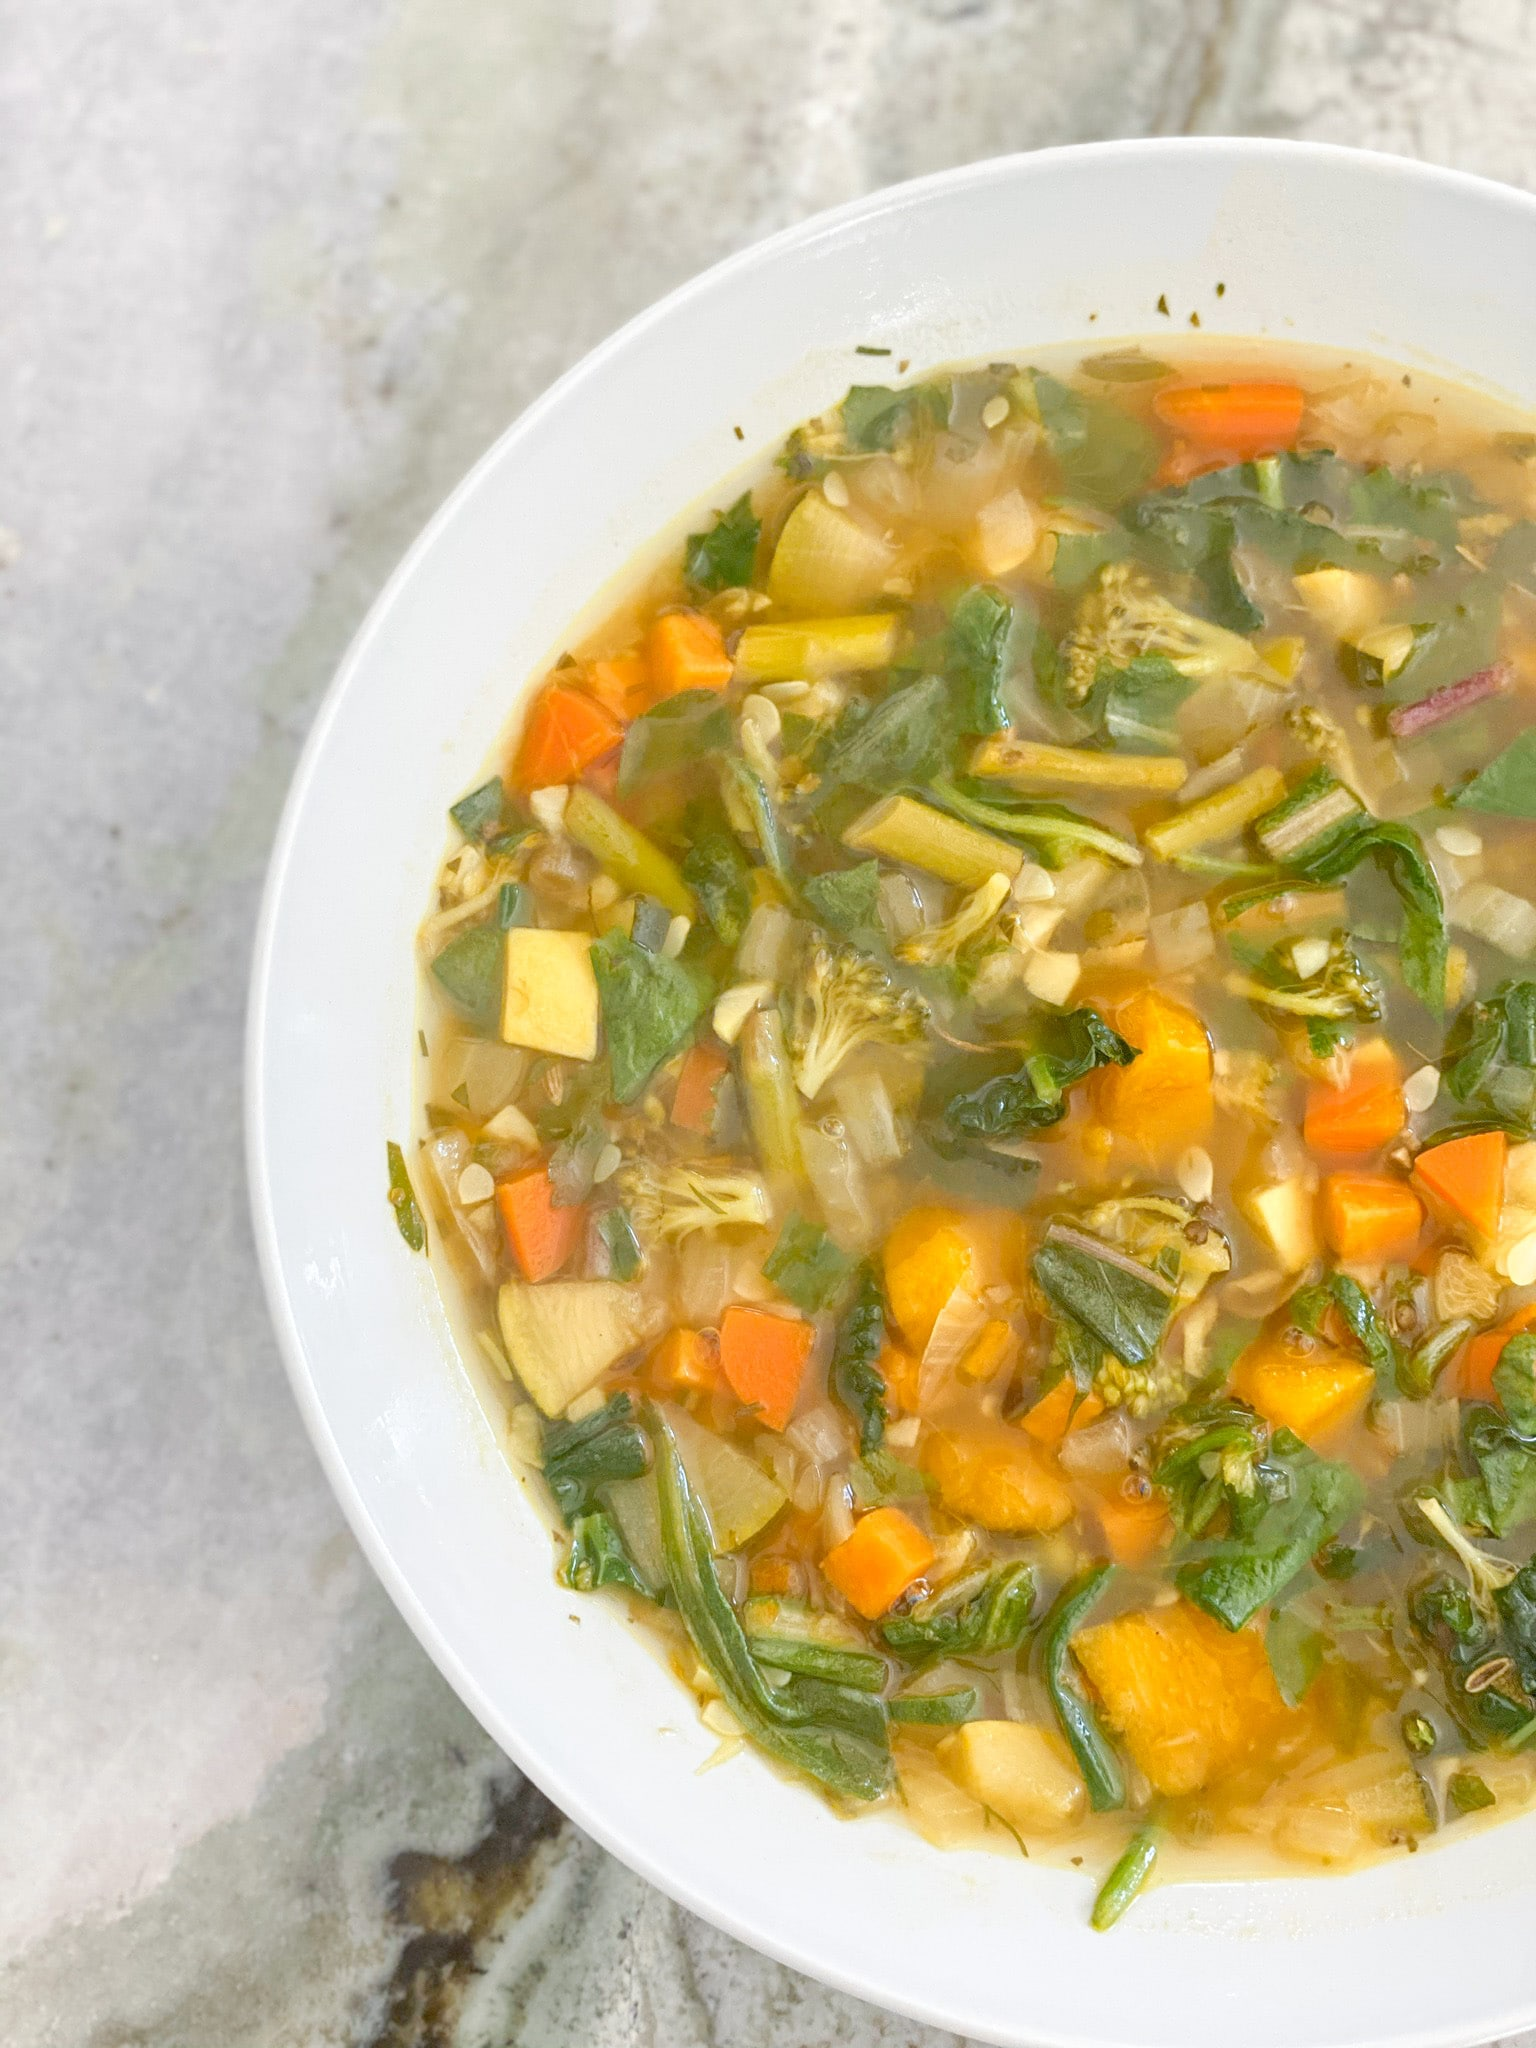 The Yummiest Vegetable Soup